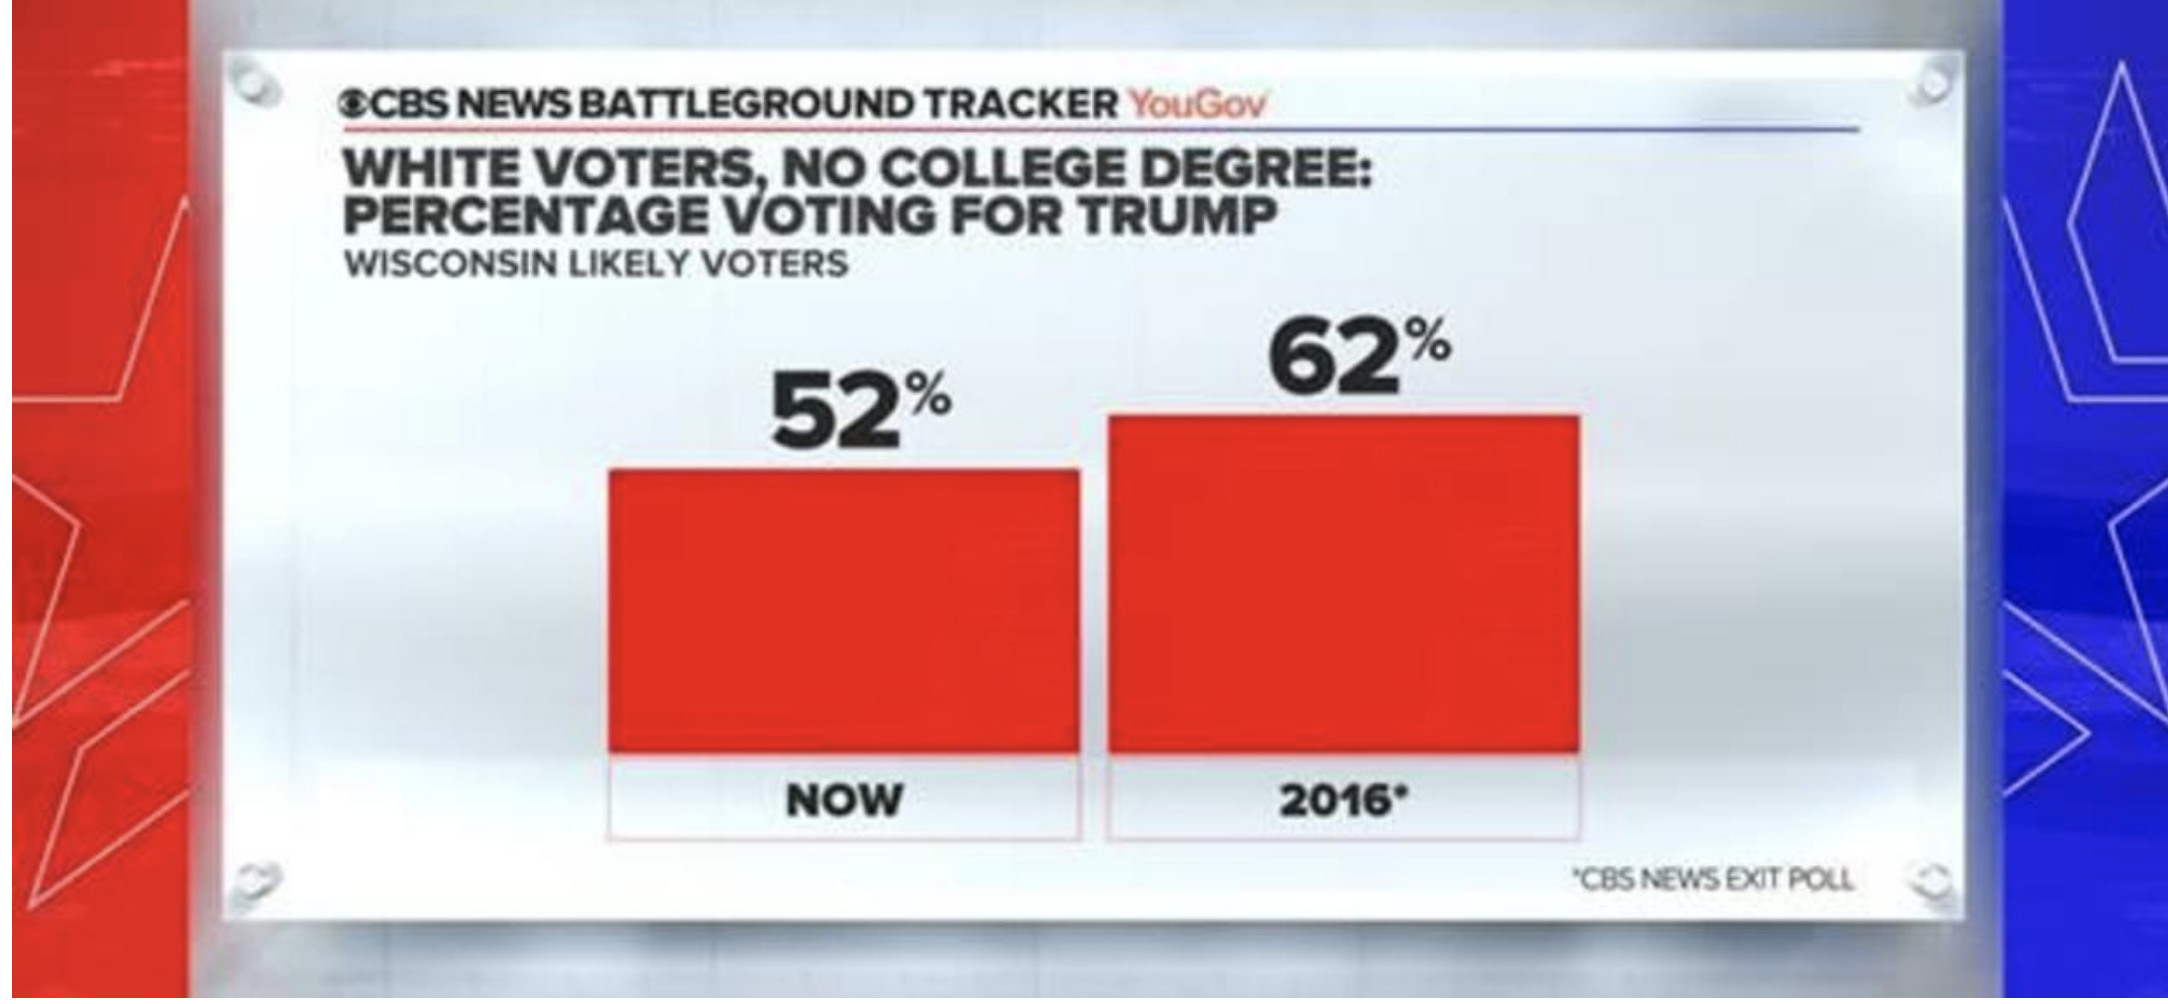 Screen-Shot-2020-10-18-at-11.52.23-AM Updated 'Swing State' Poll Results Show Dramatic Double-Digit Gap Election 2020 Featured Politics Polls Top Stories